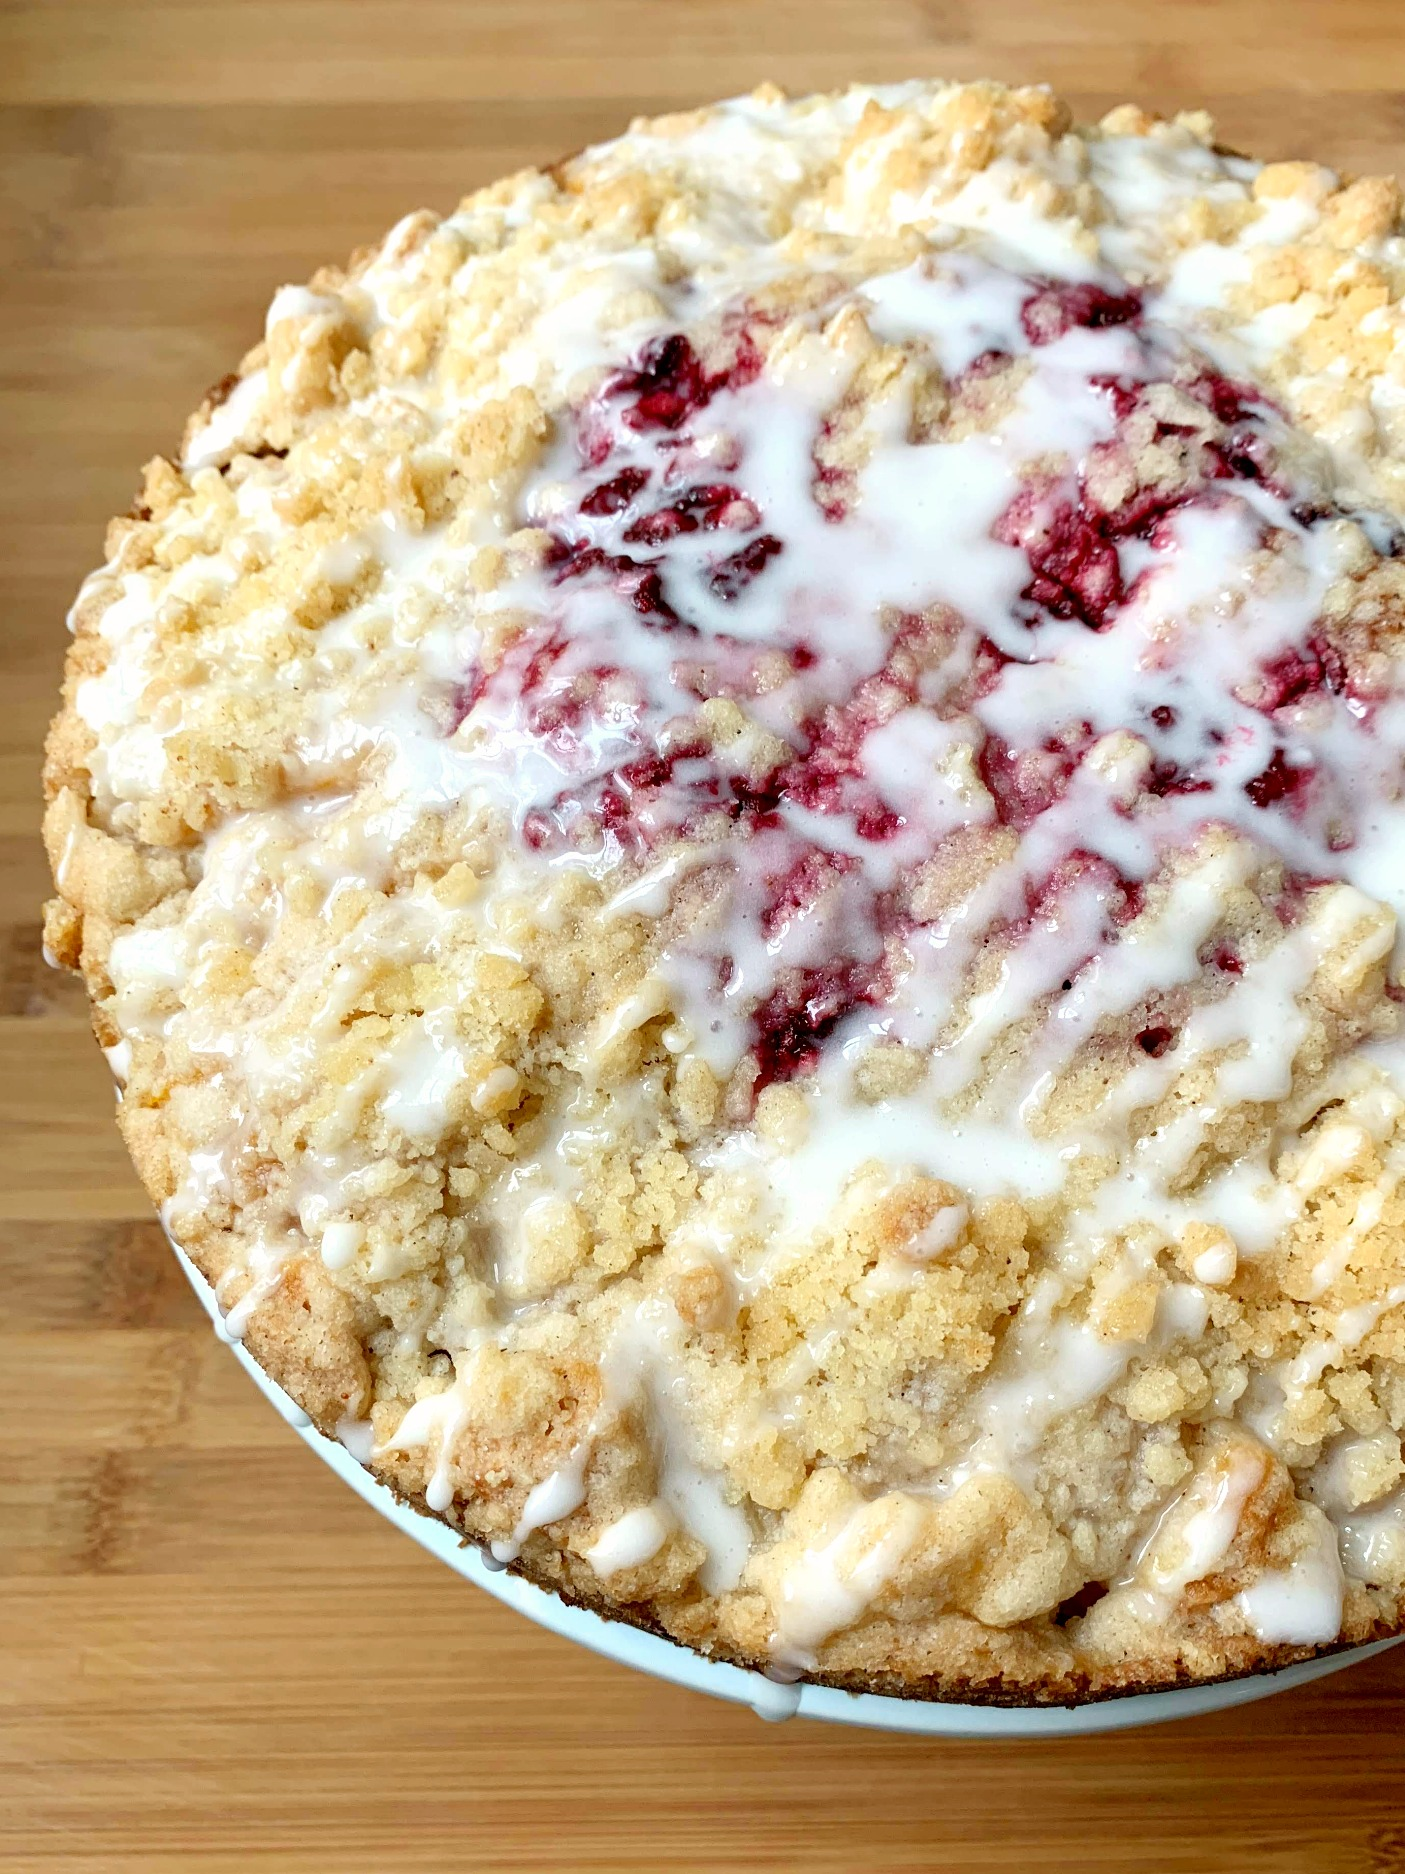 round coffee cake with crumb topping, raspberries in the center and a powdered sugar glaze